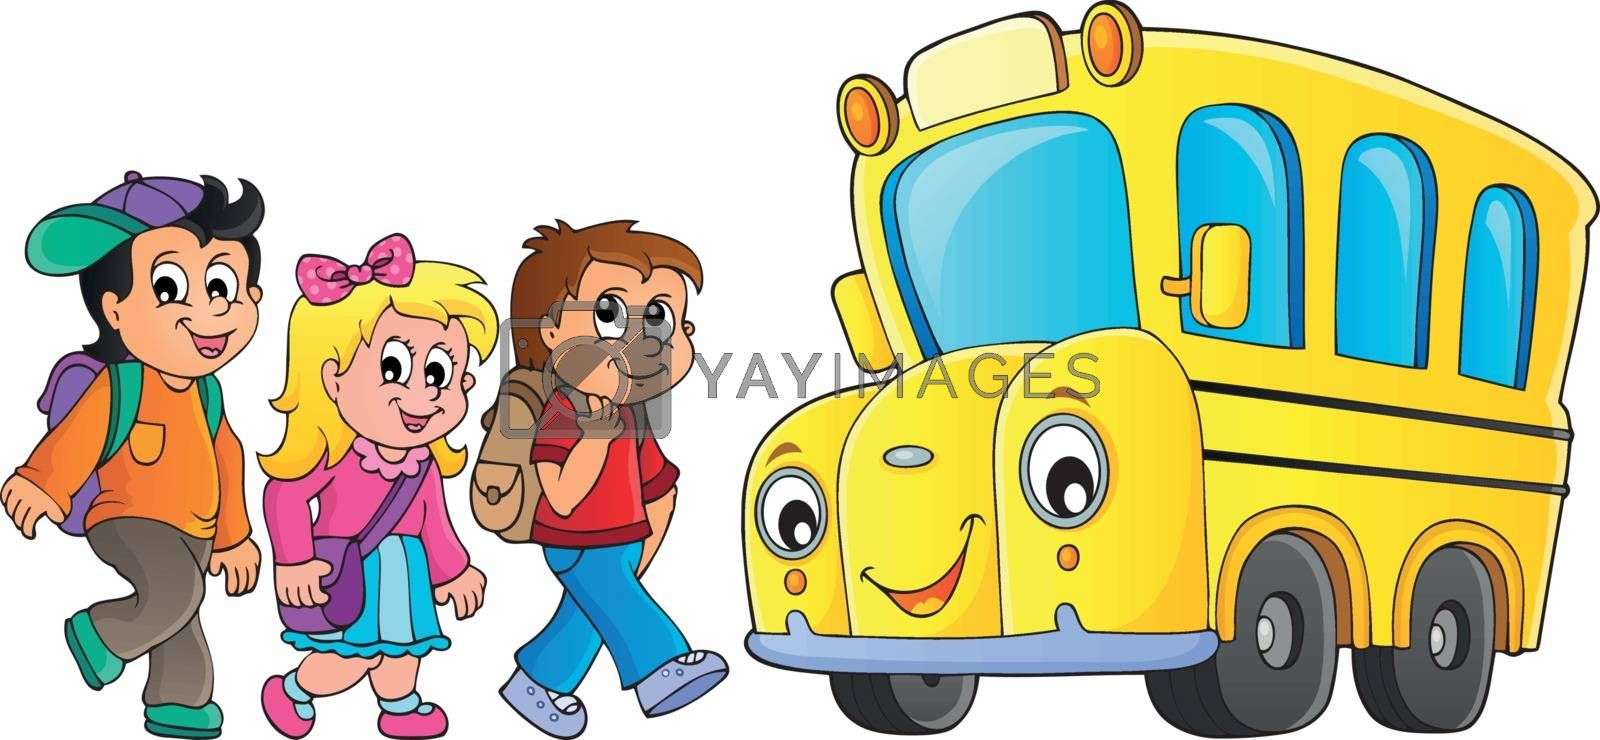 Children by school bus theme image 1 - eps10 vector illustration.